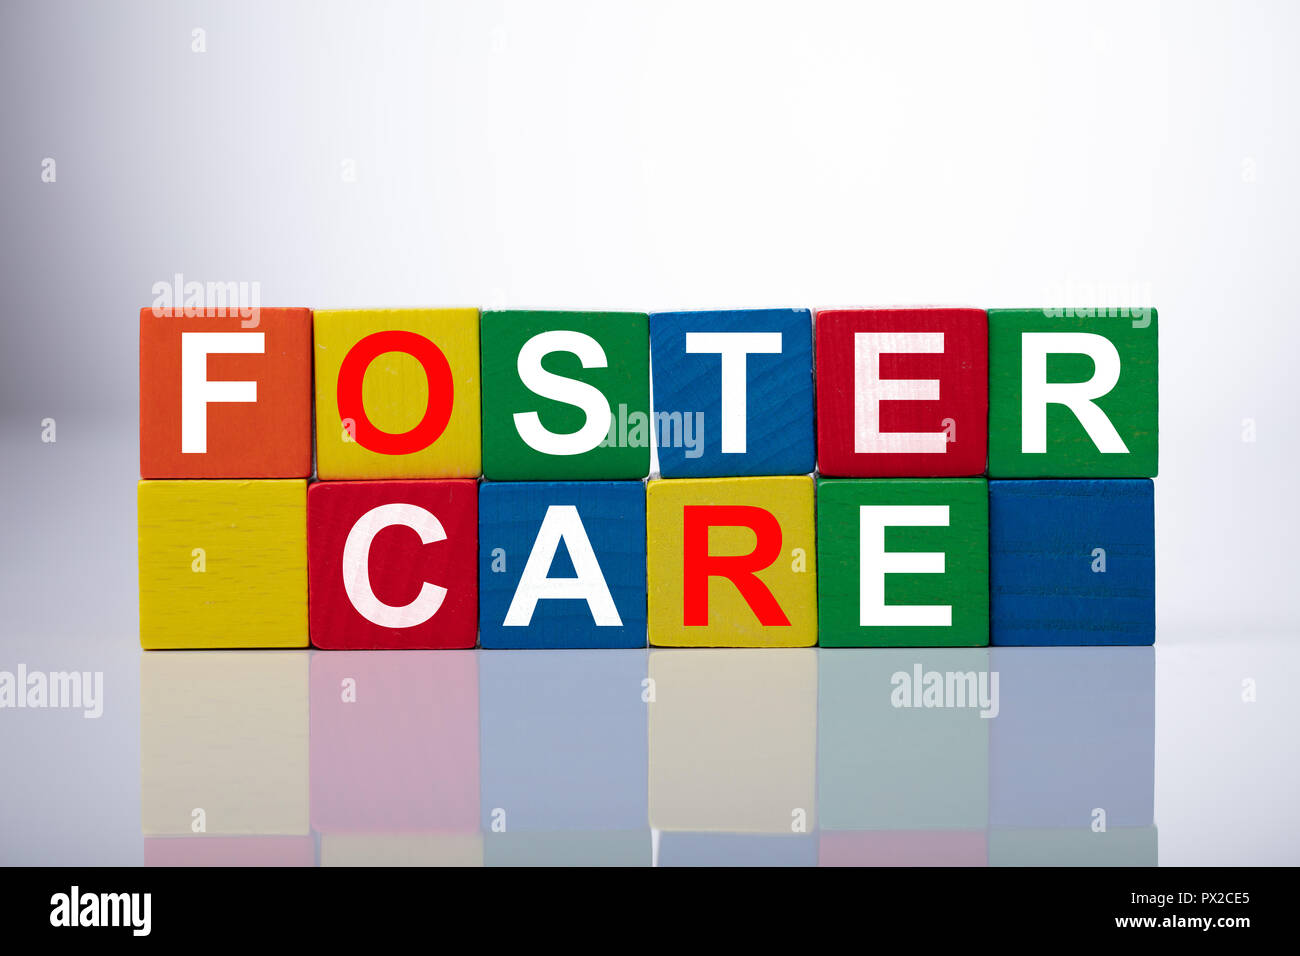 Close-up Of Foster Care Cubic Blocks On Reflective Background - Stock Image